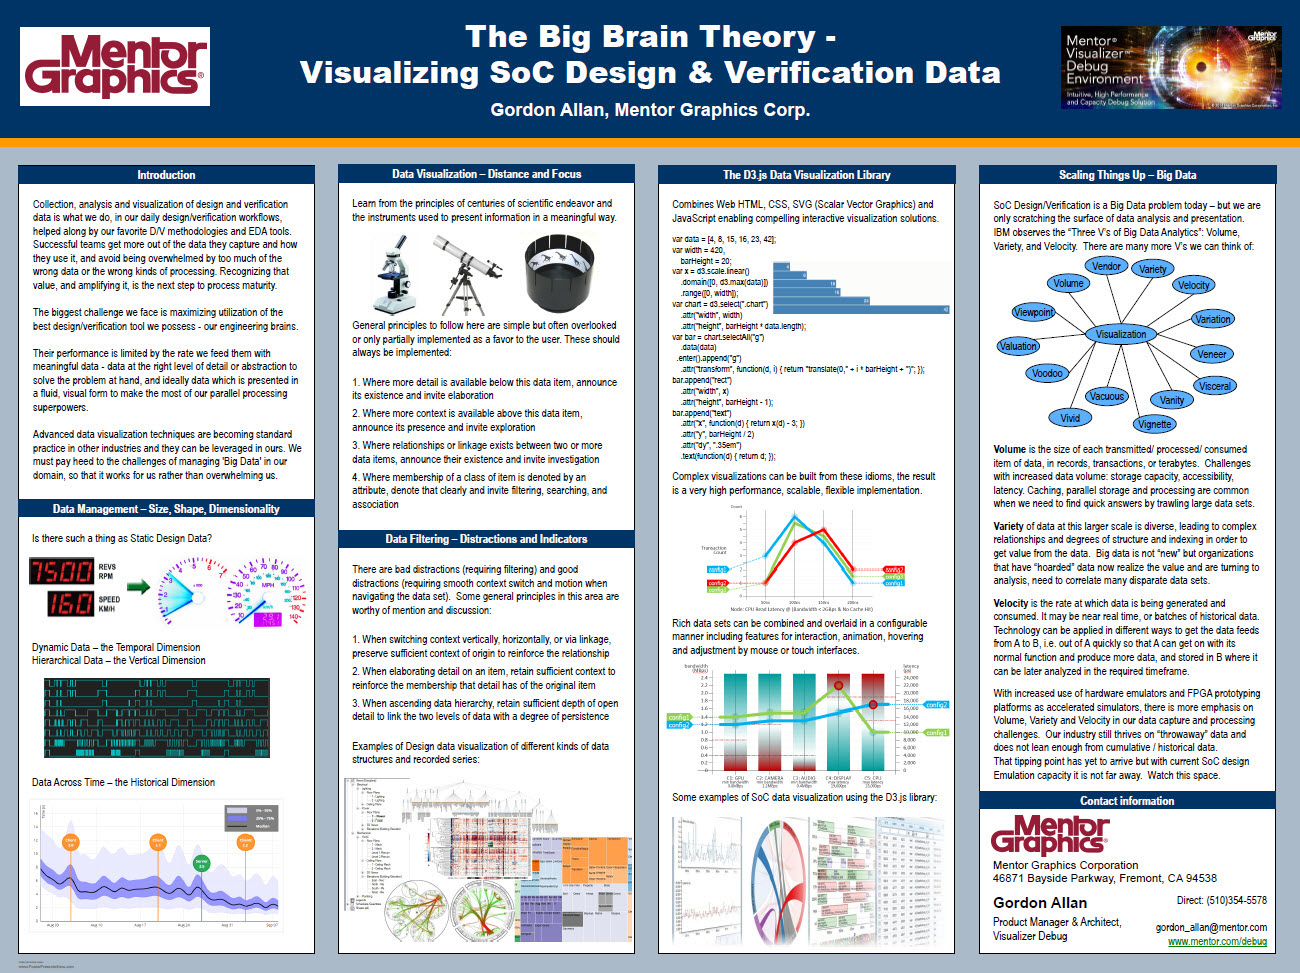 View Full Poster in PDF